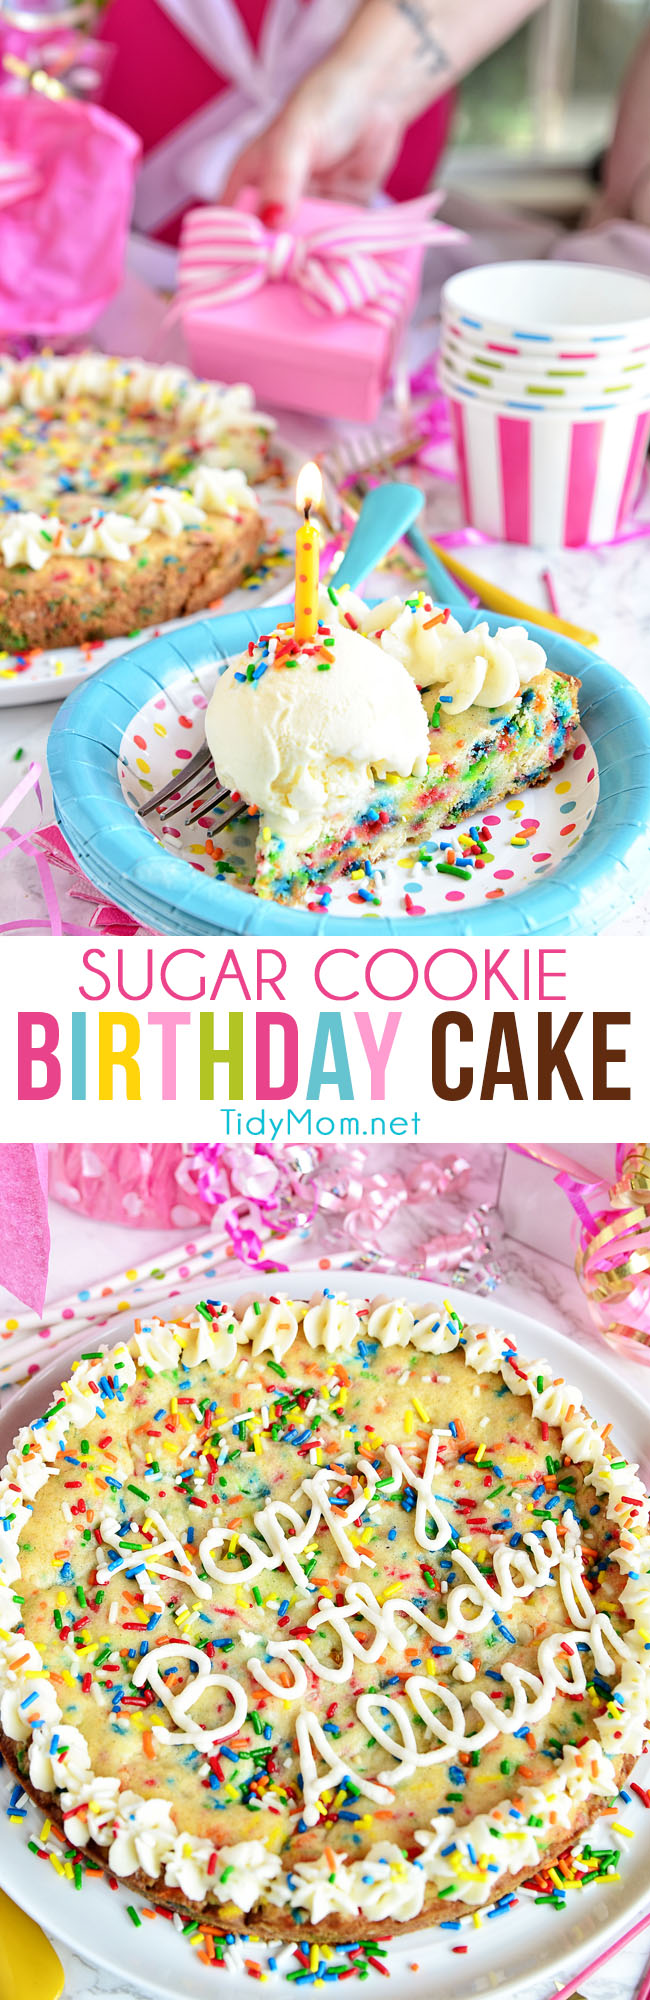 Do you love sprinkles in your birthday cake? This BIRTHDAY SUGAR COOKIE CAKE full of sprinkles! Funfetti lovers are going to flip for this homemade cookie cake. recipe at TidyMom.net #cookiecake #funfetti #birthdaycake #sugarcookie